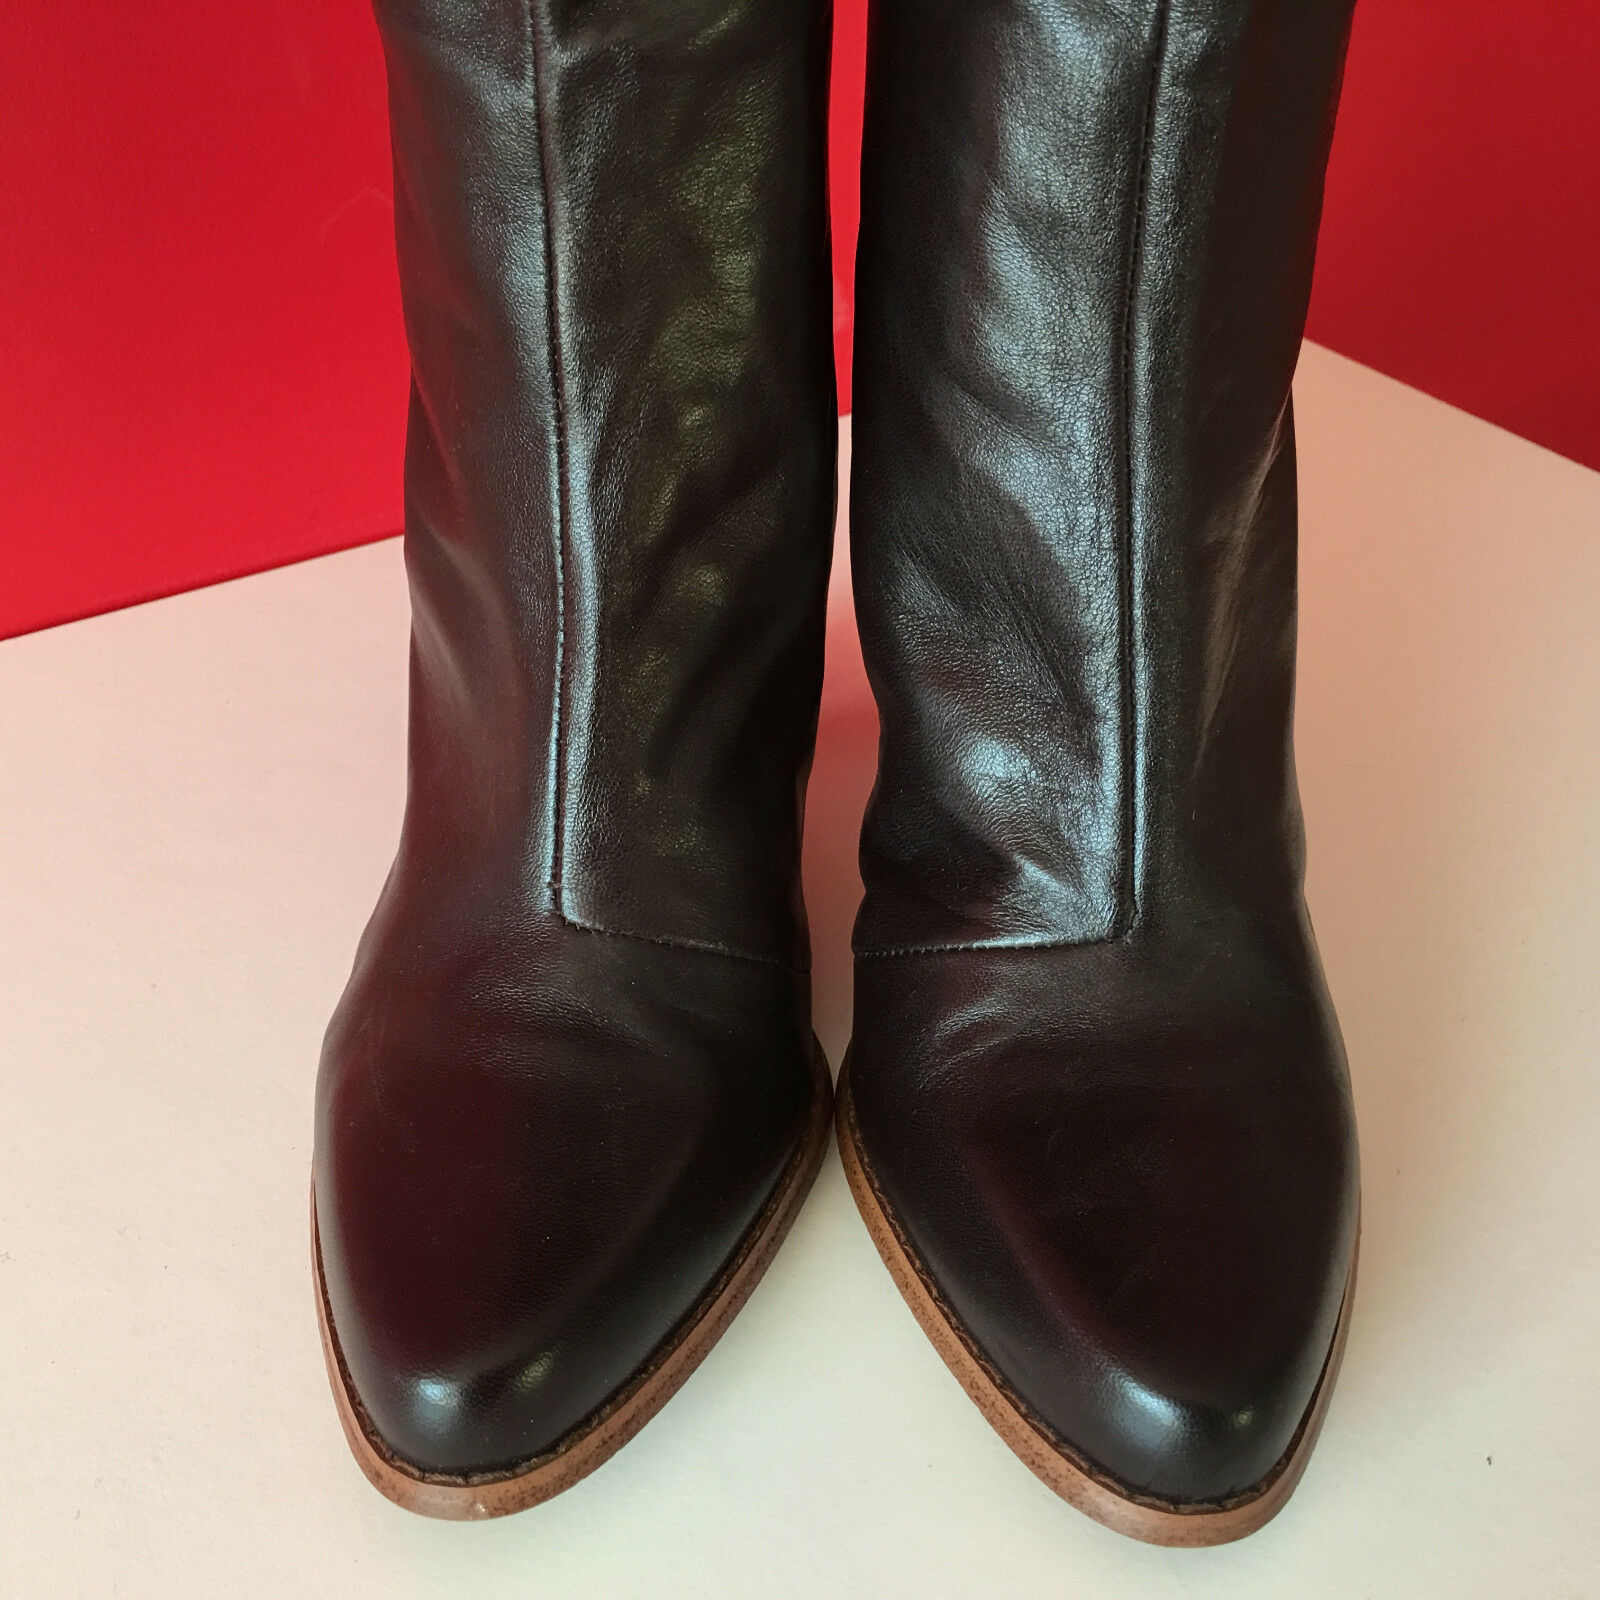 FRENCH CONNECTION Braun Leder Retro Pull On Knee Knee On High Stiefel Größe 5 EUR38 c2aa43